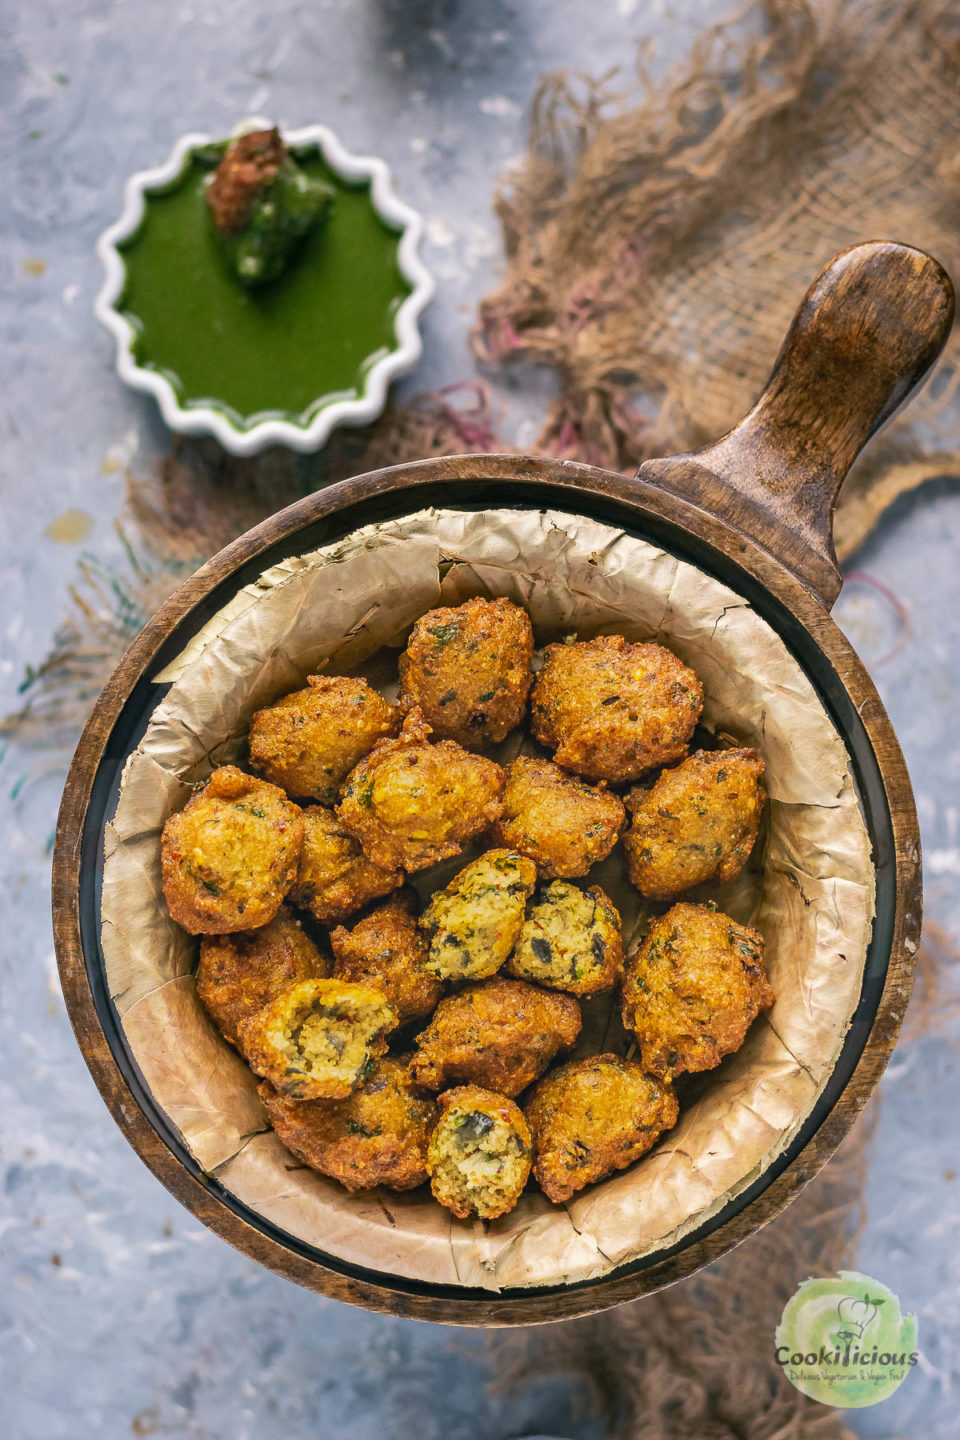 Crispy Moong Dal Pakora (one of the popular easy vegan appetizers) served n a round bowl with green chutney on the side